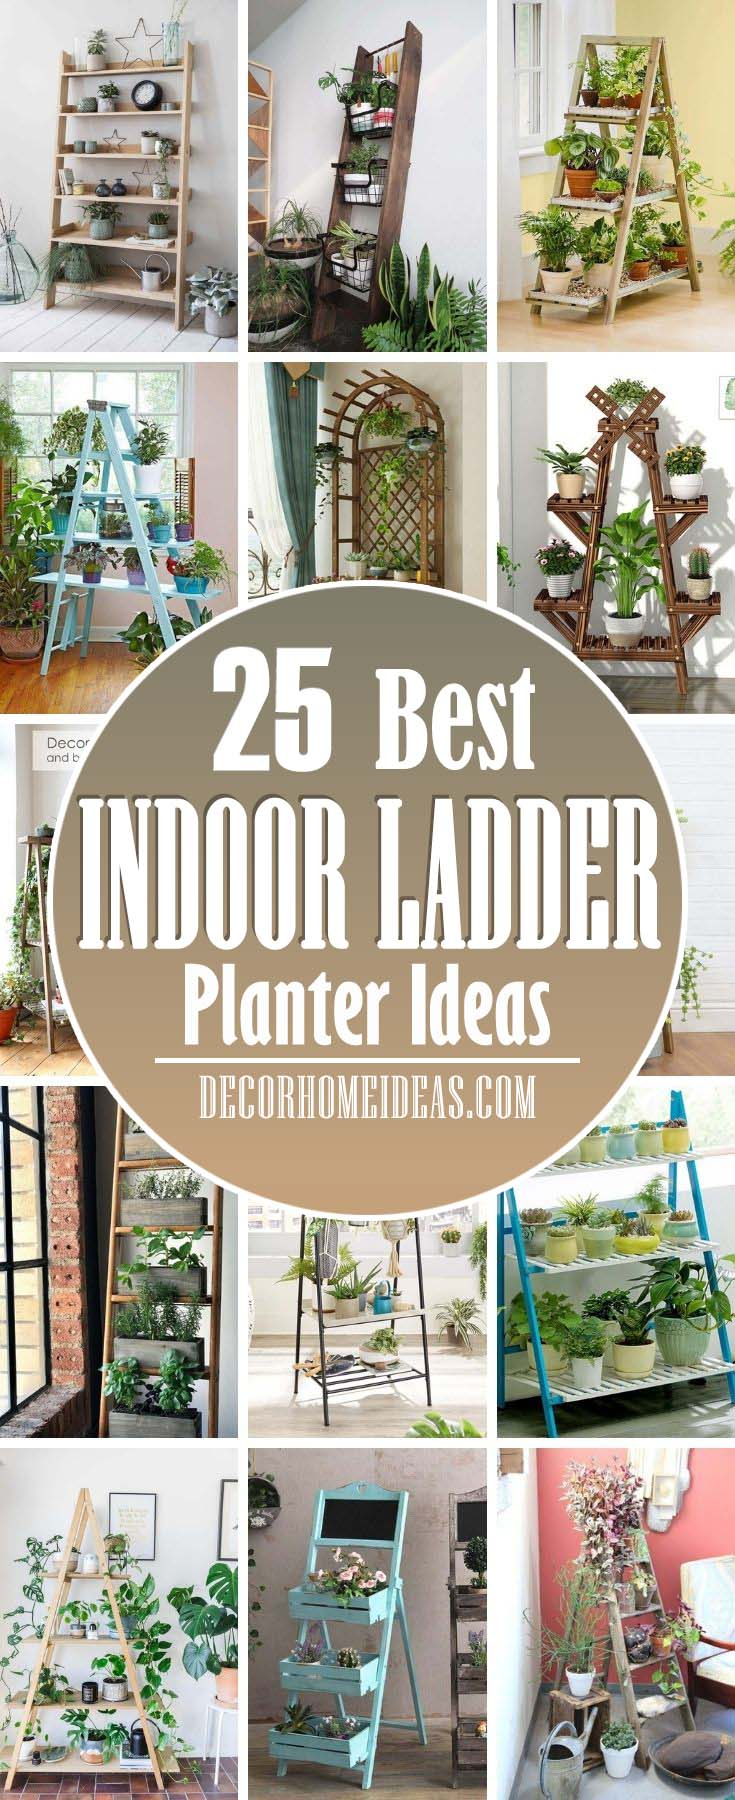 Best Indoor Ladder Planter Ideas. These ladder planters would make a super beautiful vertical garden for any of your particular space and will also be a smart way to shift garden greenery to your indoor spaces. #decorhomeideas